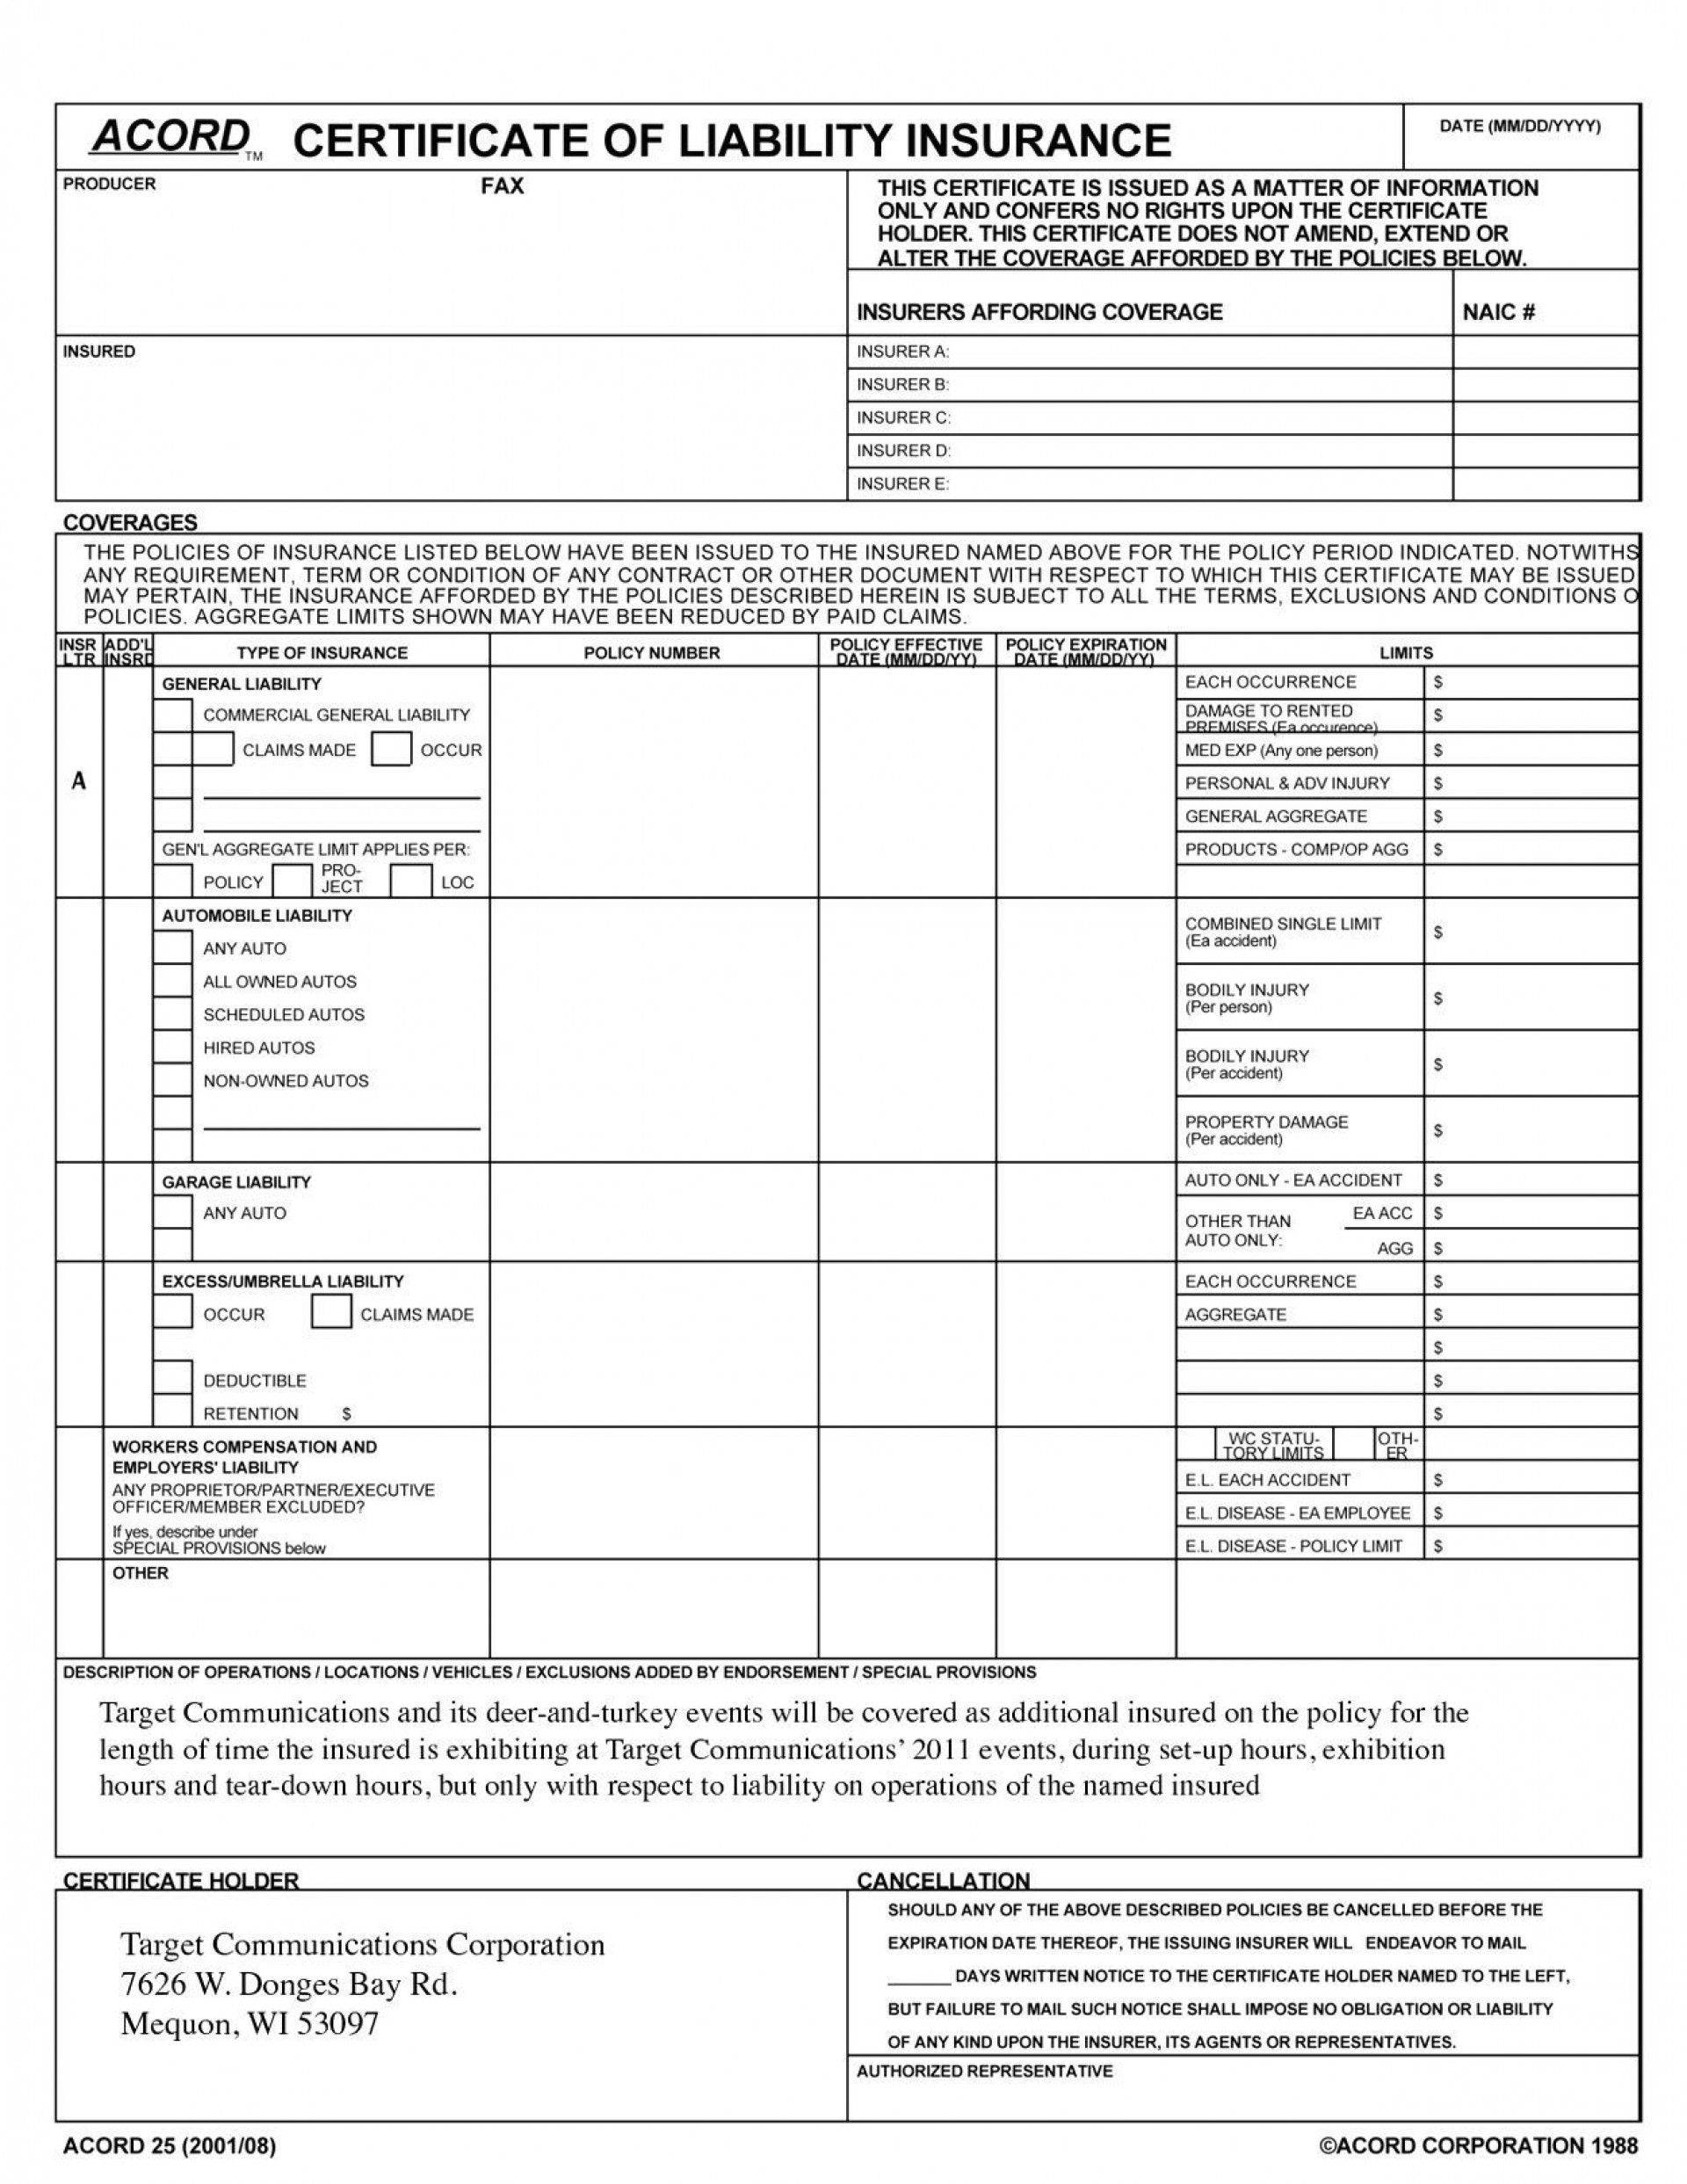 008 Stirring Certificate Of Insurance Template High Def  Sample Pdf Csio Tracking Acces1920